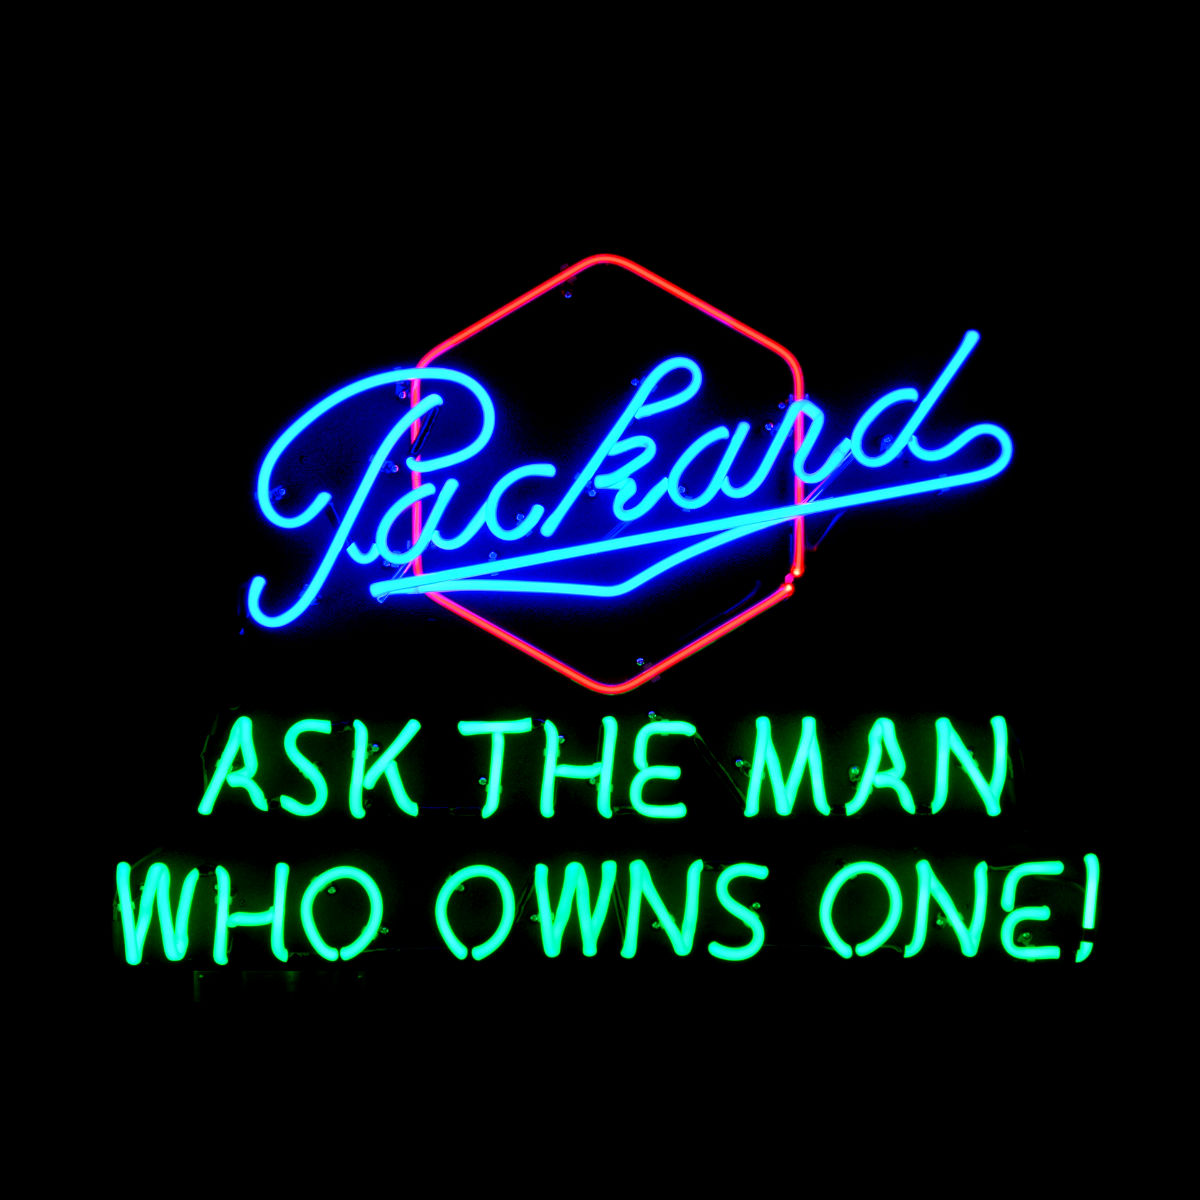 """""""Packard - Ask The Man Who Owns One!"""" Neon Sign by John Barton - former Packard New Car Dealer"""